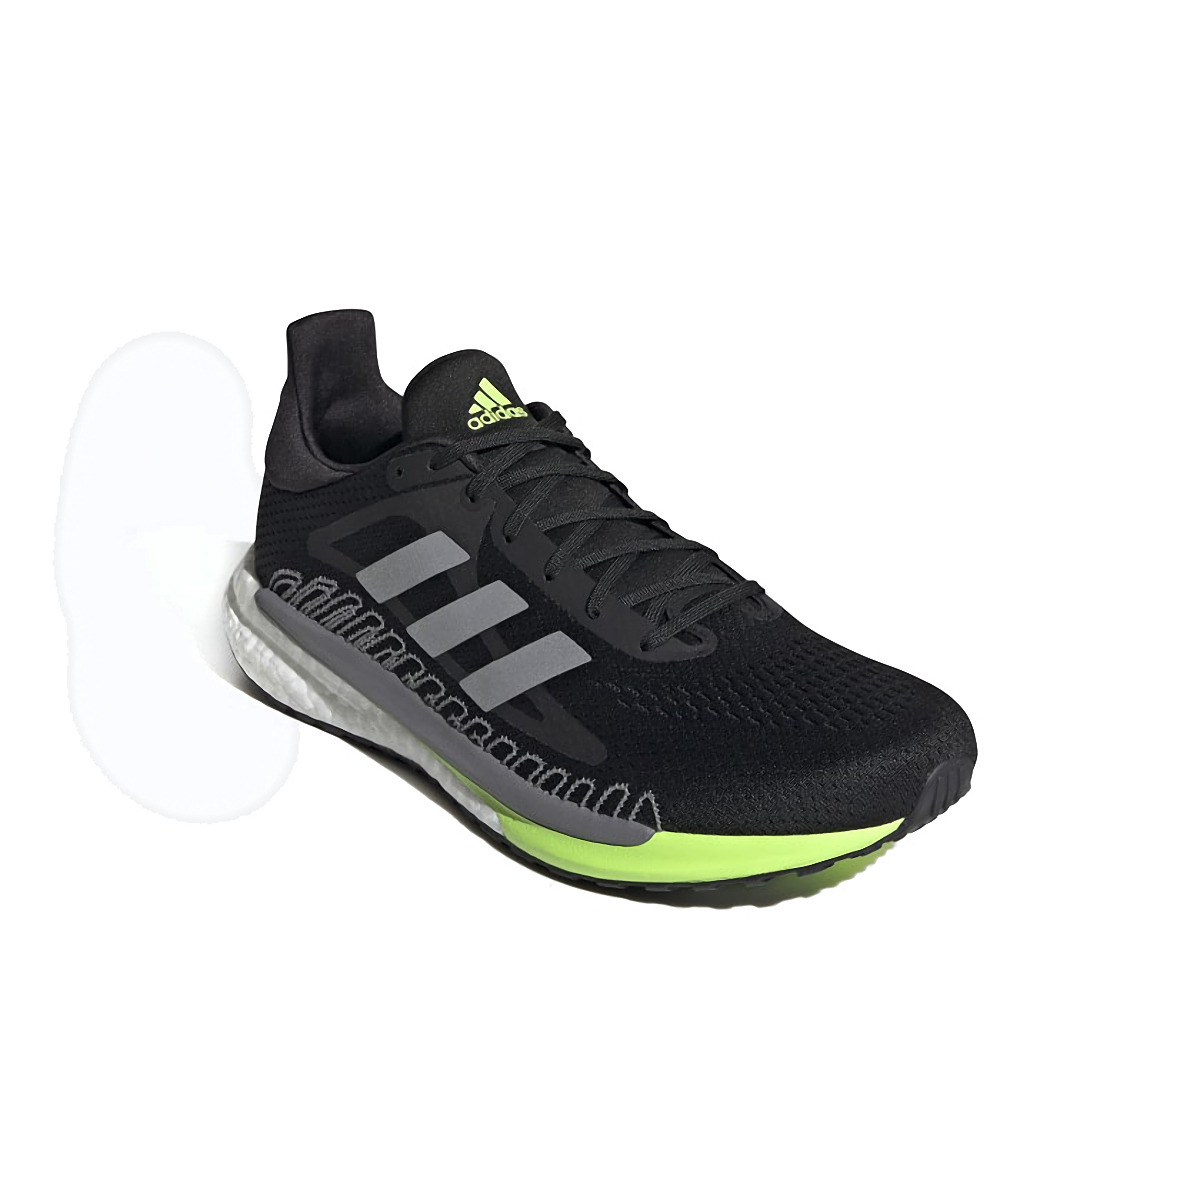 Men's Adidas Solarglide 3 Running Shoe - Color: Grey/Silver Metallic/Signal Green - Size: 6.5 - Width: Regular, Grey/Silver Metallic/Signal Green, large, image 4